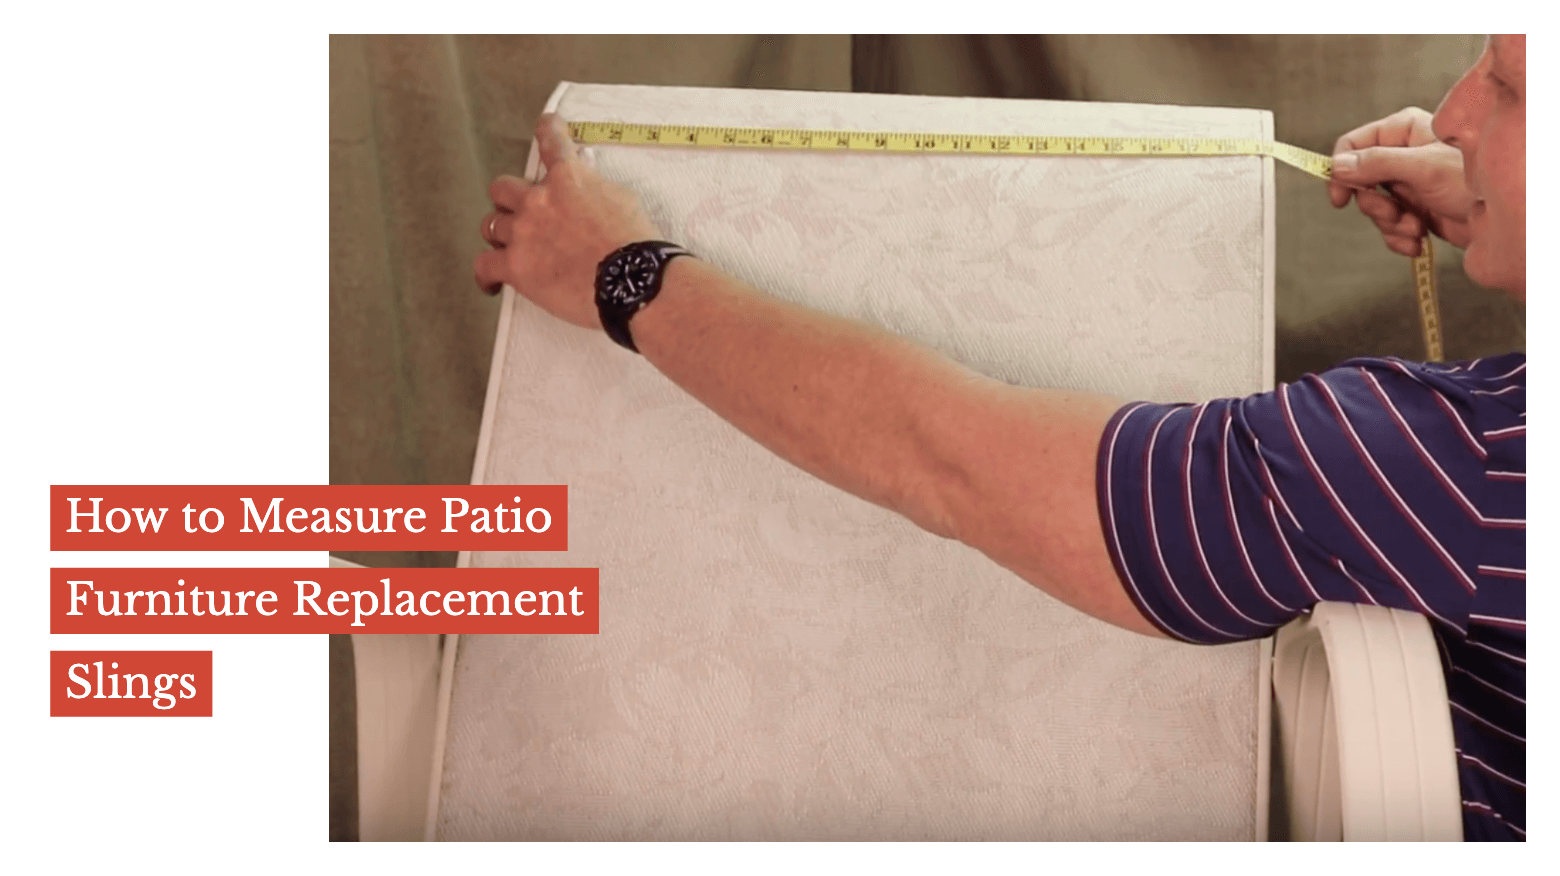 How to Measure Patio Furniture Replacement Slings